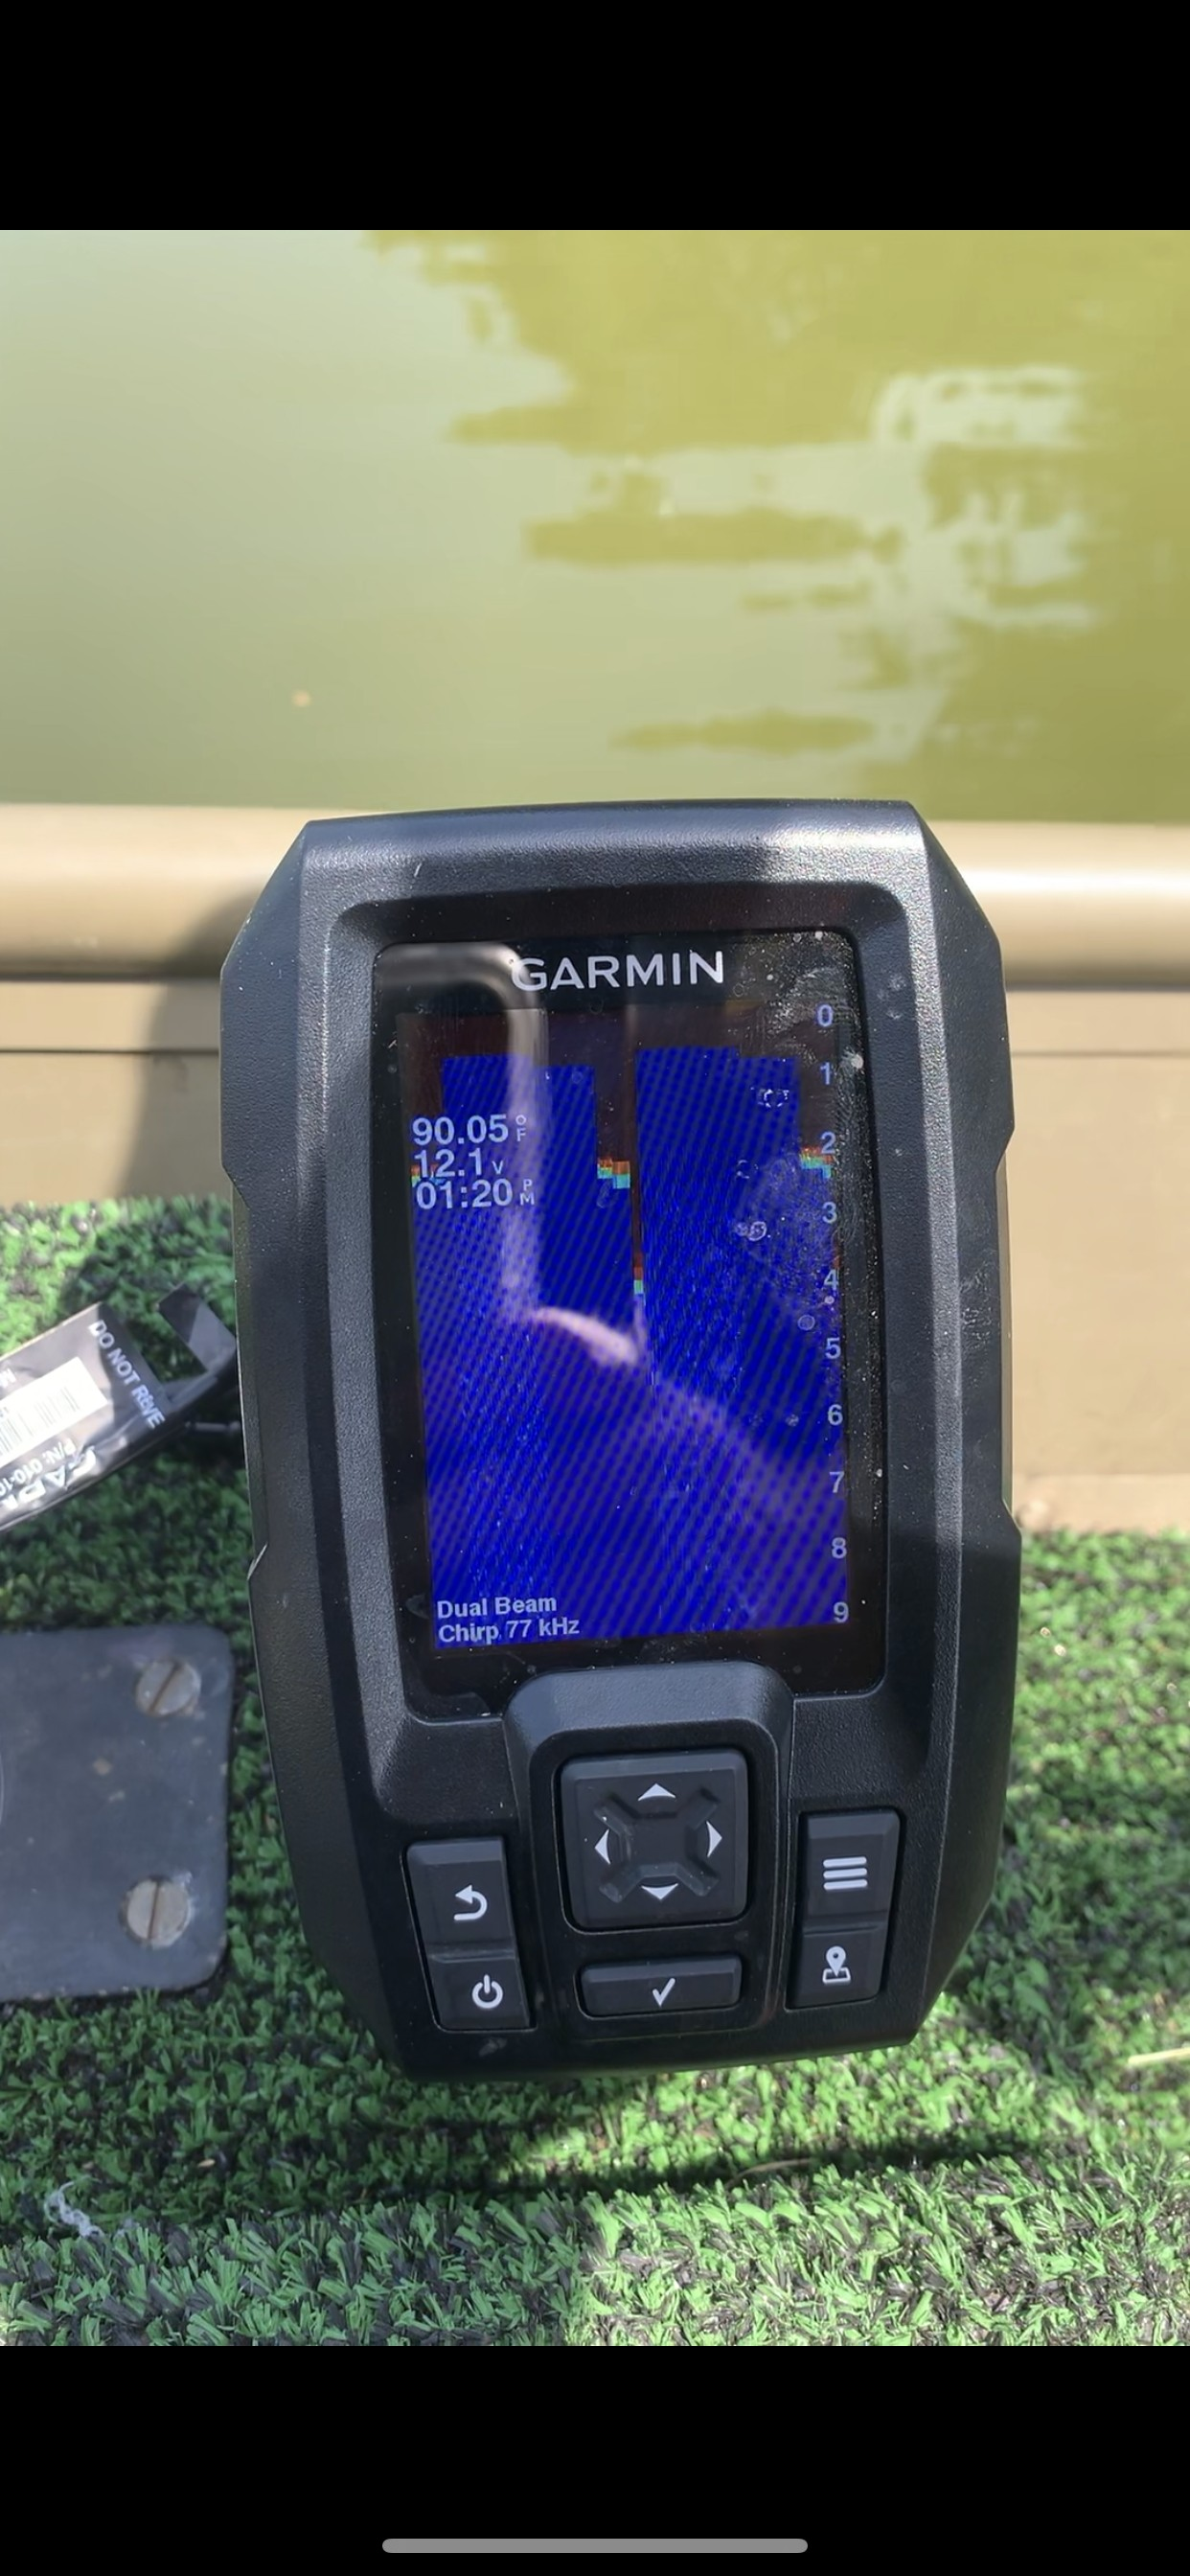 How Do You Wire A Garmin Striker 4 Garmin Striker 4 sonar issue Marine Electronics Bass Of How Do You Wire A Garmin Striker 4